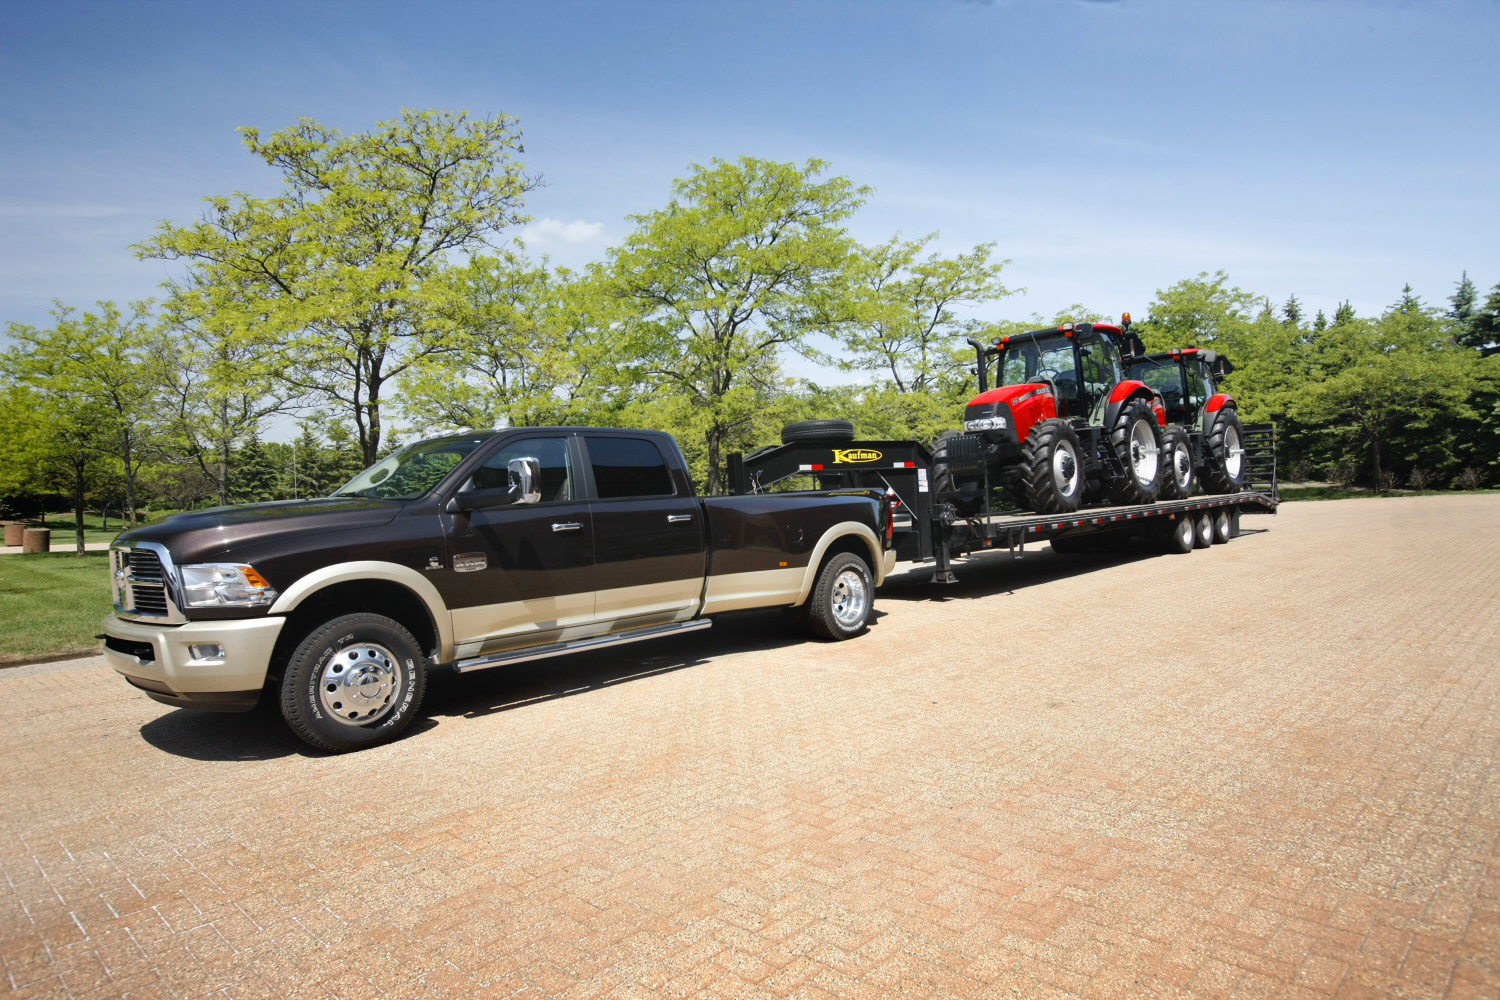 Ram Goes All Out For Sae J2807 Truck Ratings